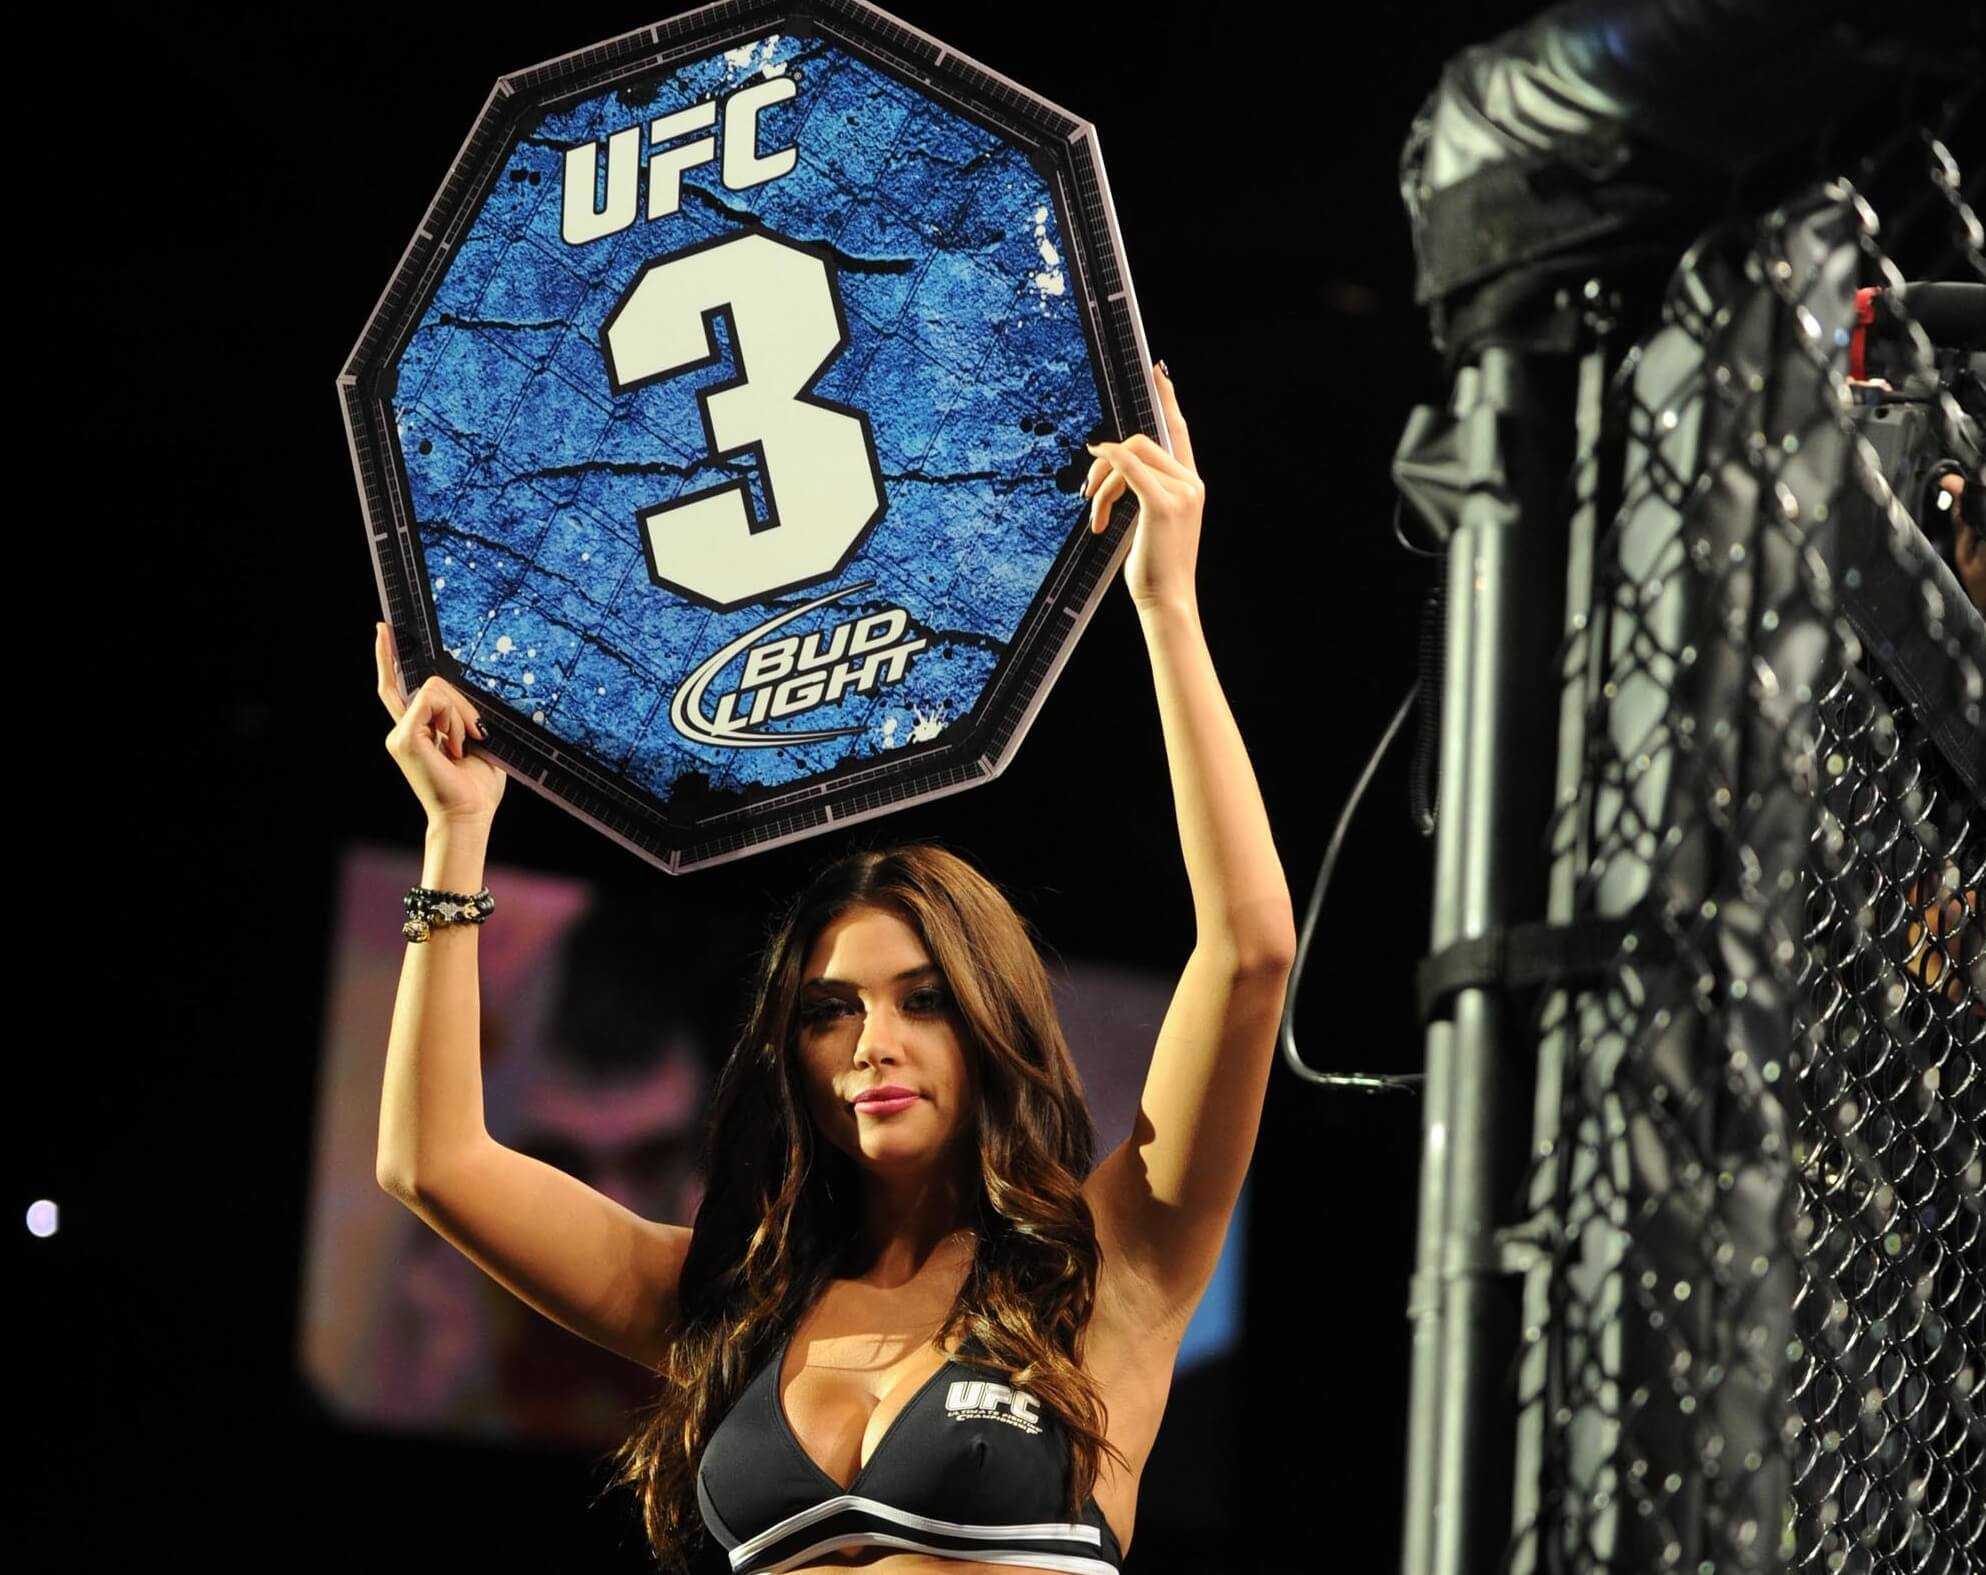 Ultimate fighter 20 finale betting predictions political betting republican nomination schedule